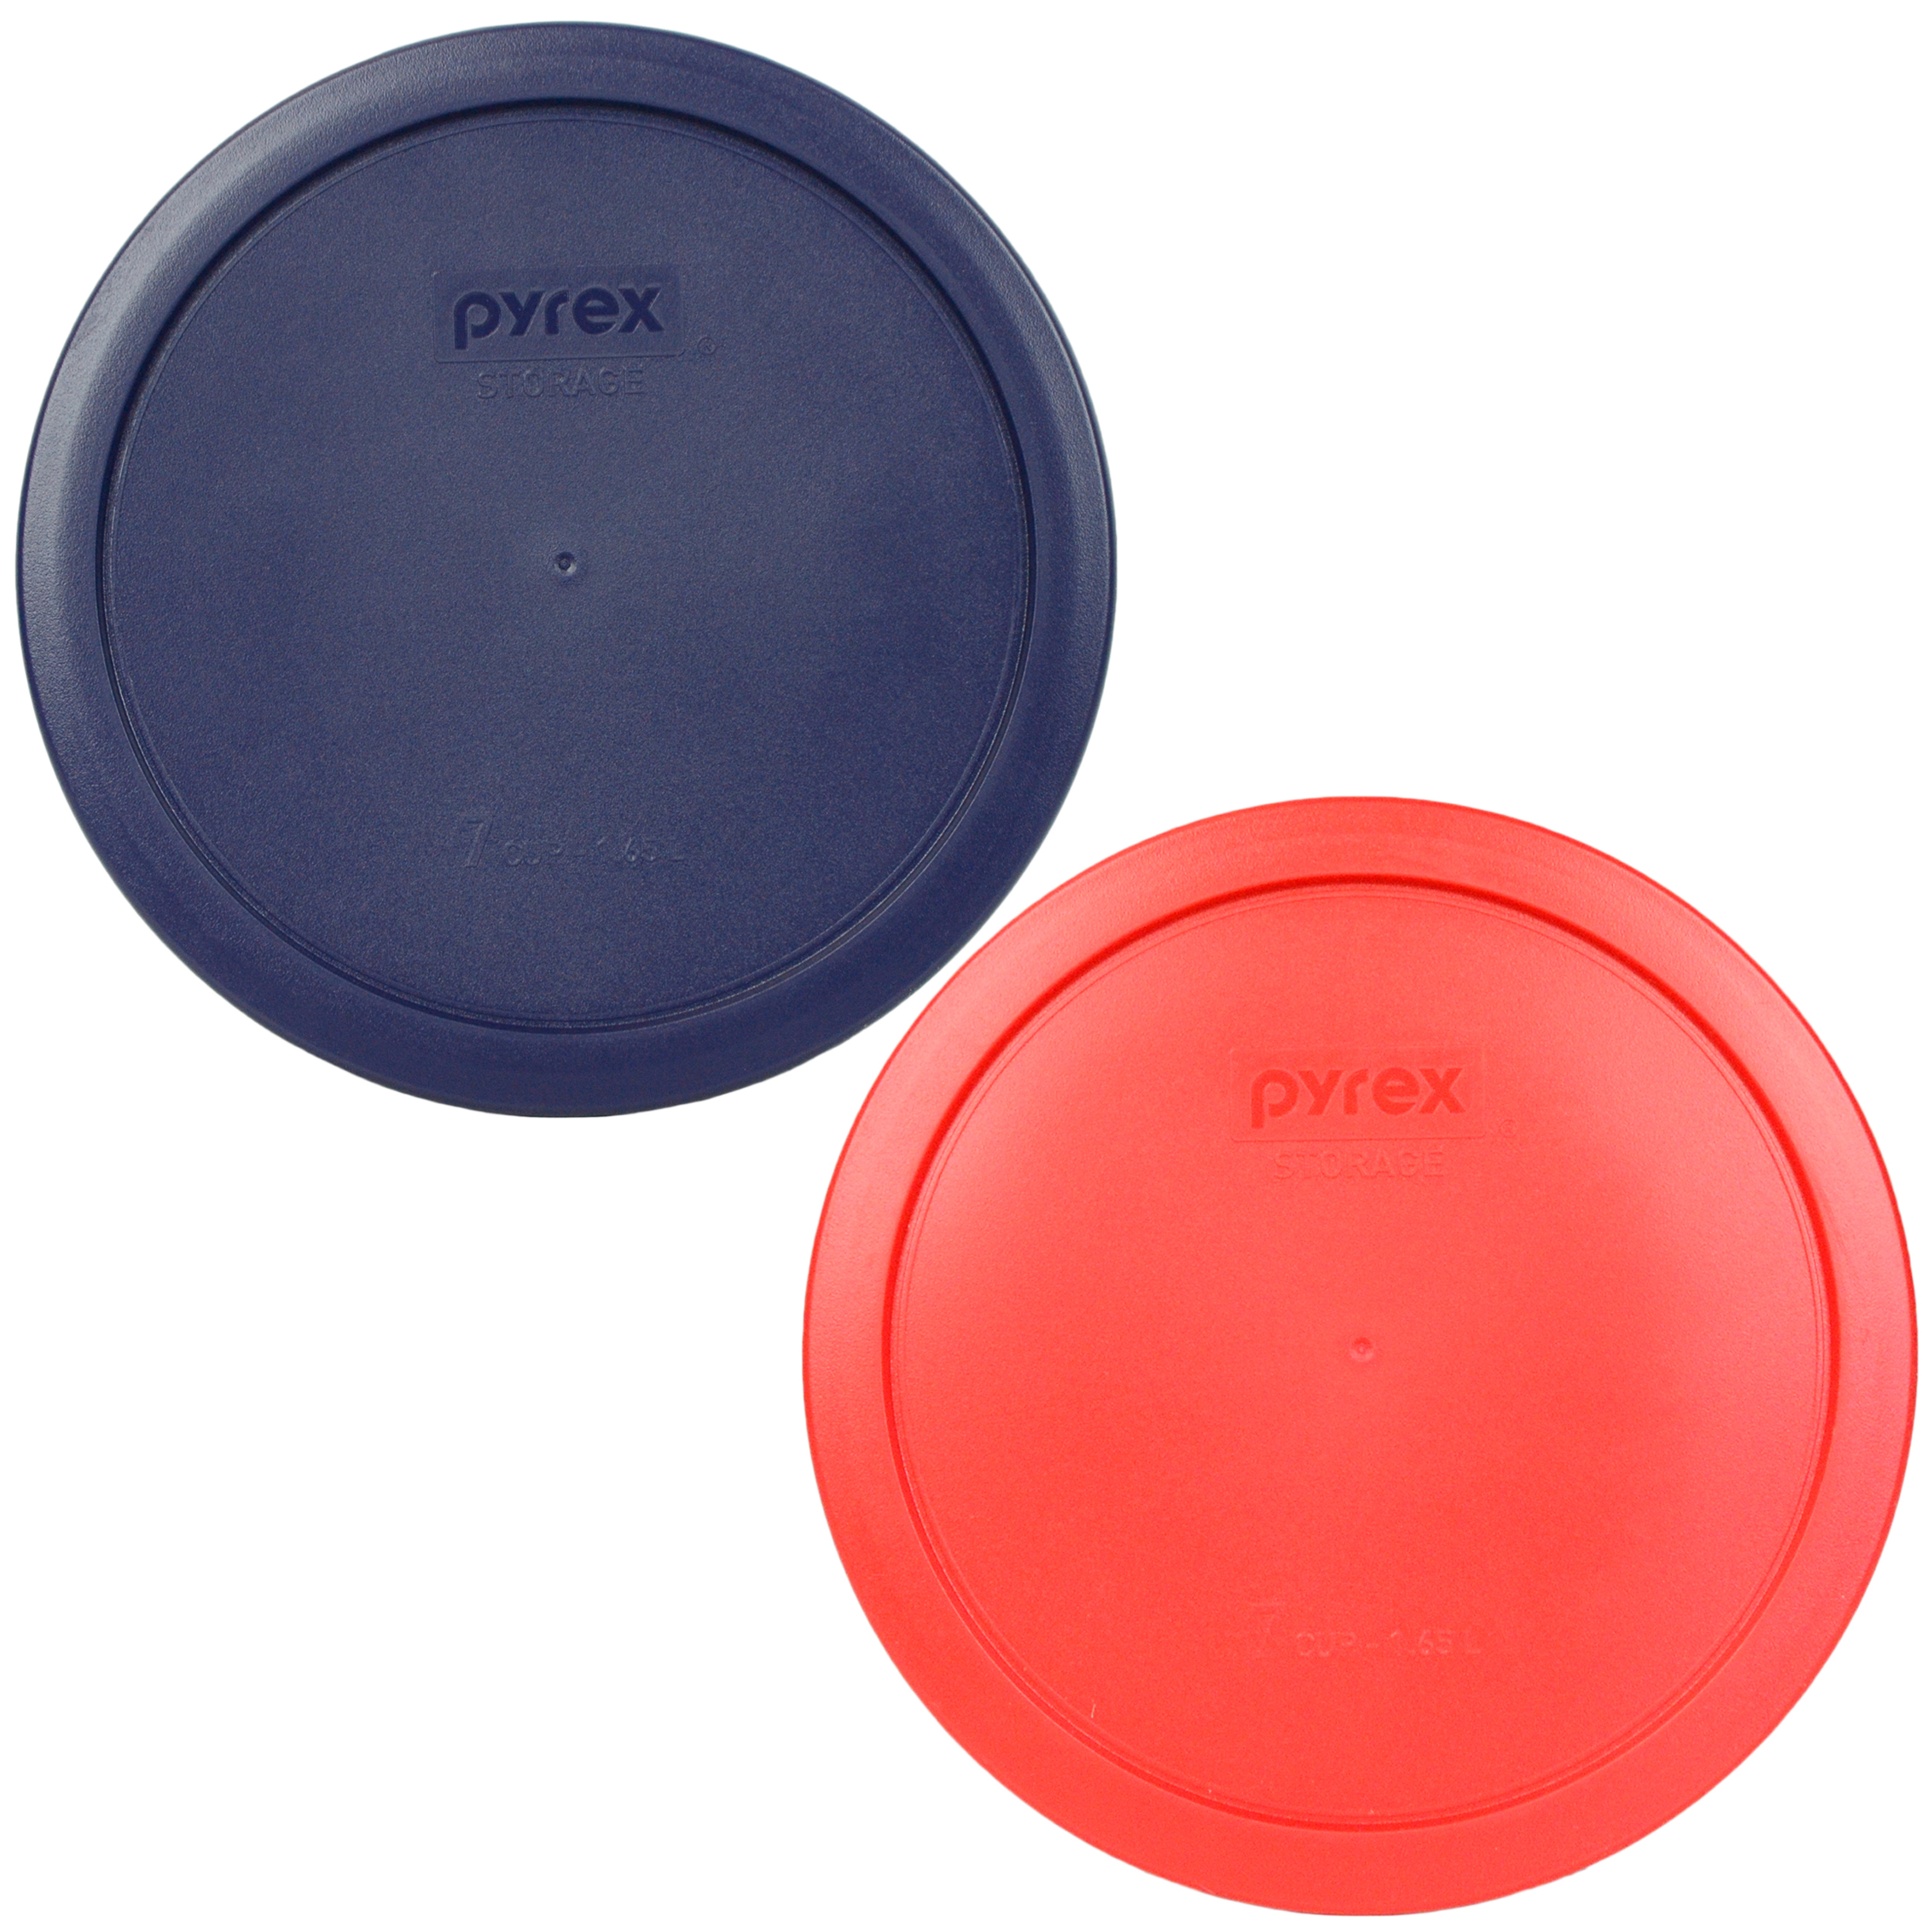 Pyrex Replacement Lid 7402-PC (1) Blue & (1) Red Round Cover for Pyrex 7402 6-Cup & 7-Cup Bowl (Sold Separately)